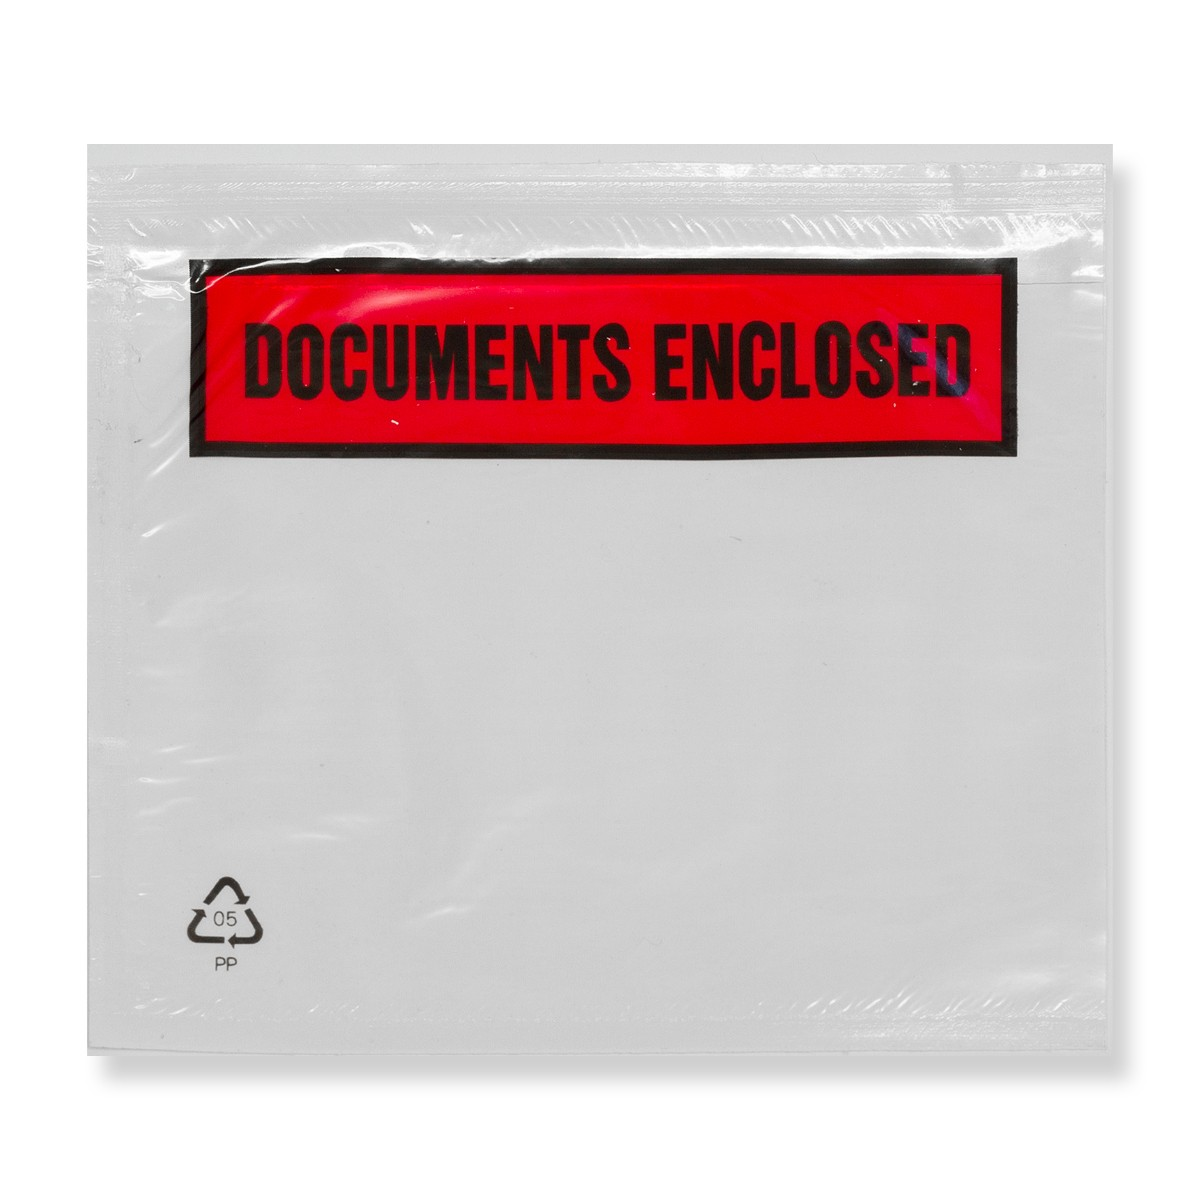 C7 CLEAR DOCUMENTS ENCLOSED WALLETS PRINTED (81 x 113mm)